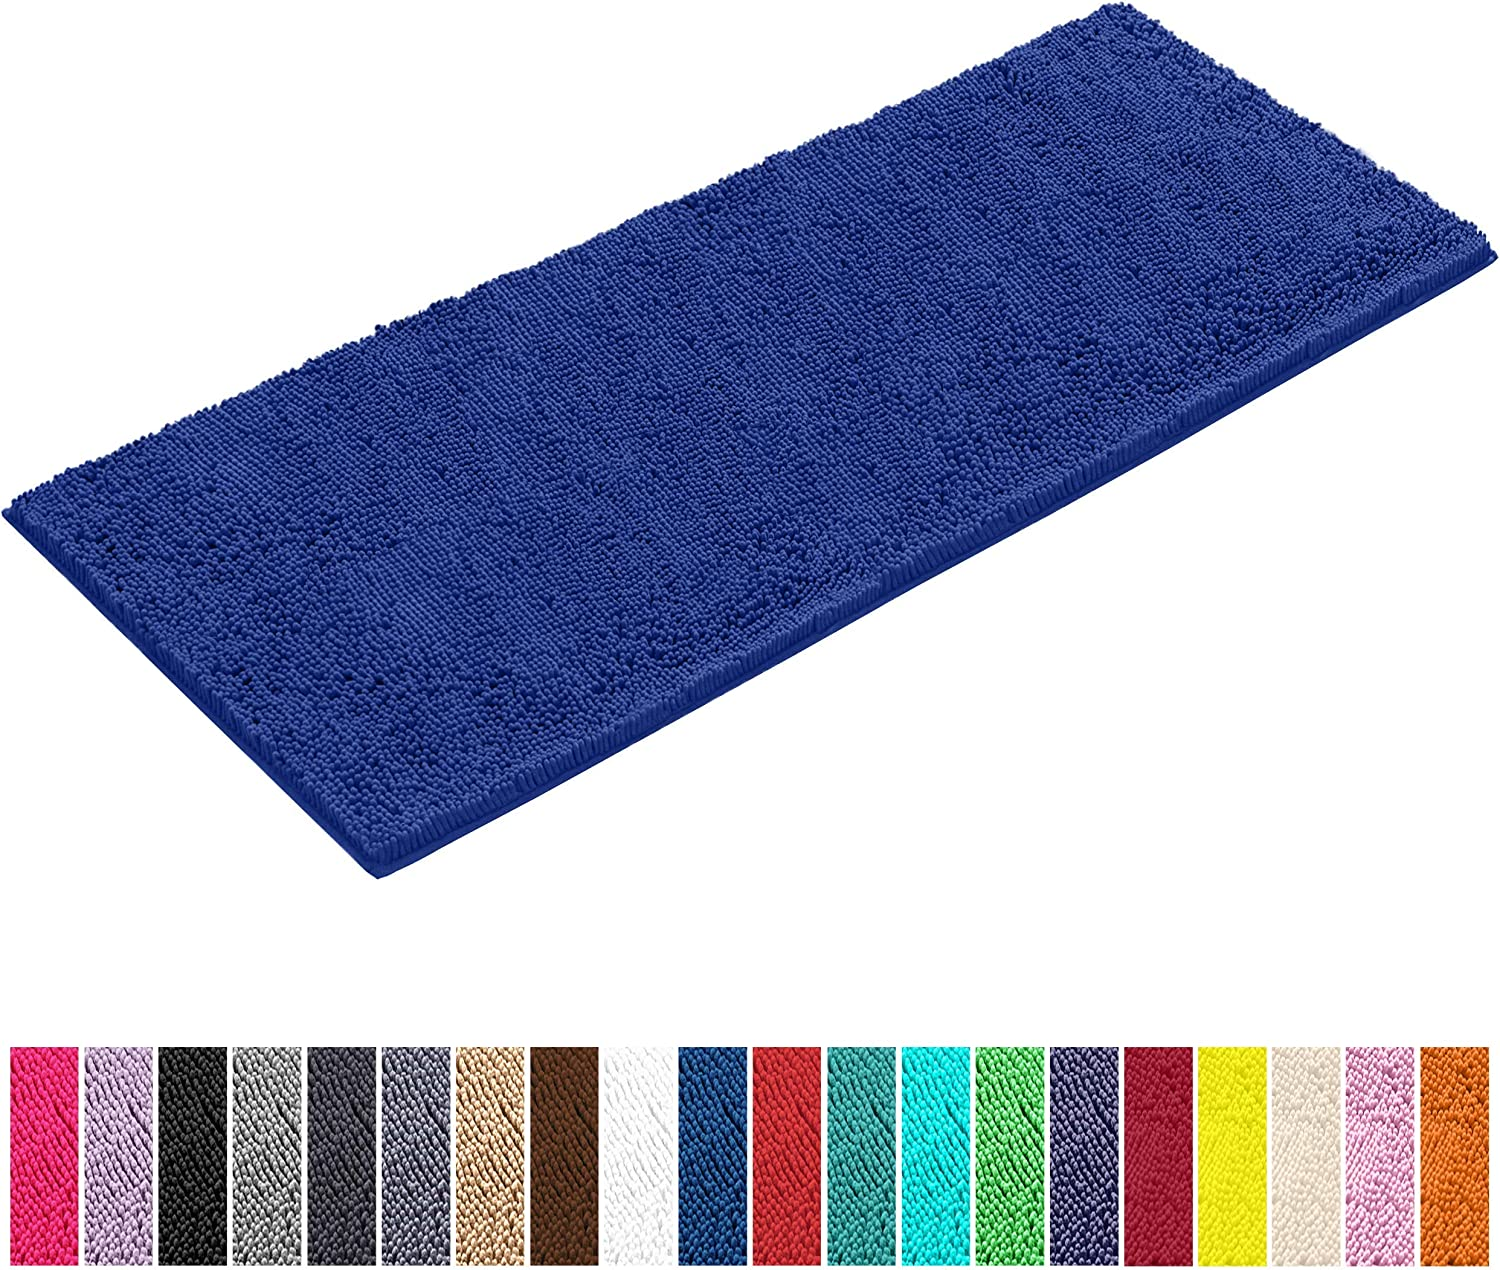 LuxUrux Bath Mat-Extra-Soft Plush Bath Shower Bathroom Rug,1'' Chenille Microfiber Material, Super Absorbent Shaggy Bath Rug. Machine Wash & Dry (27''x 47 inches, Blue)